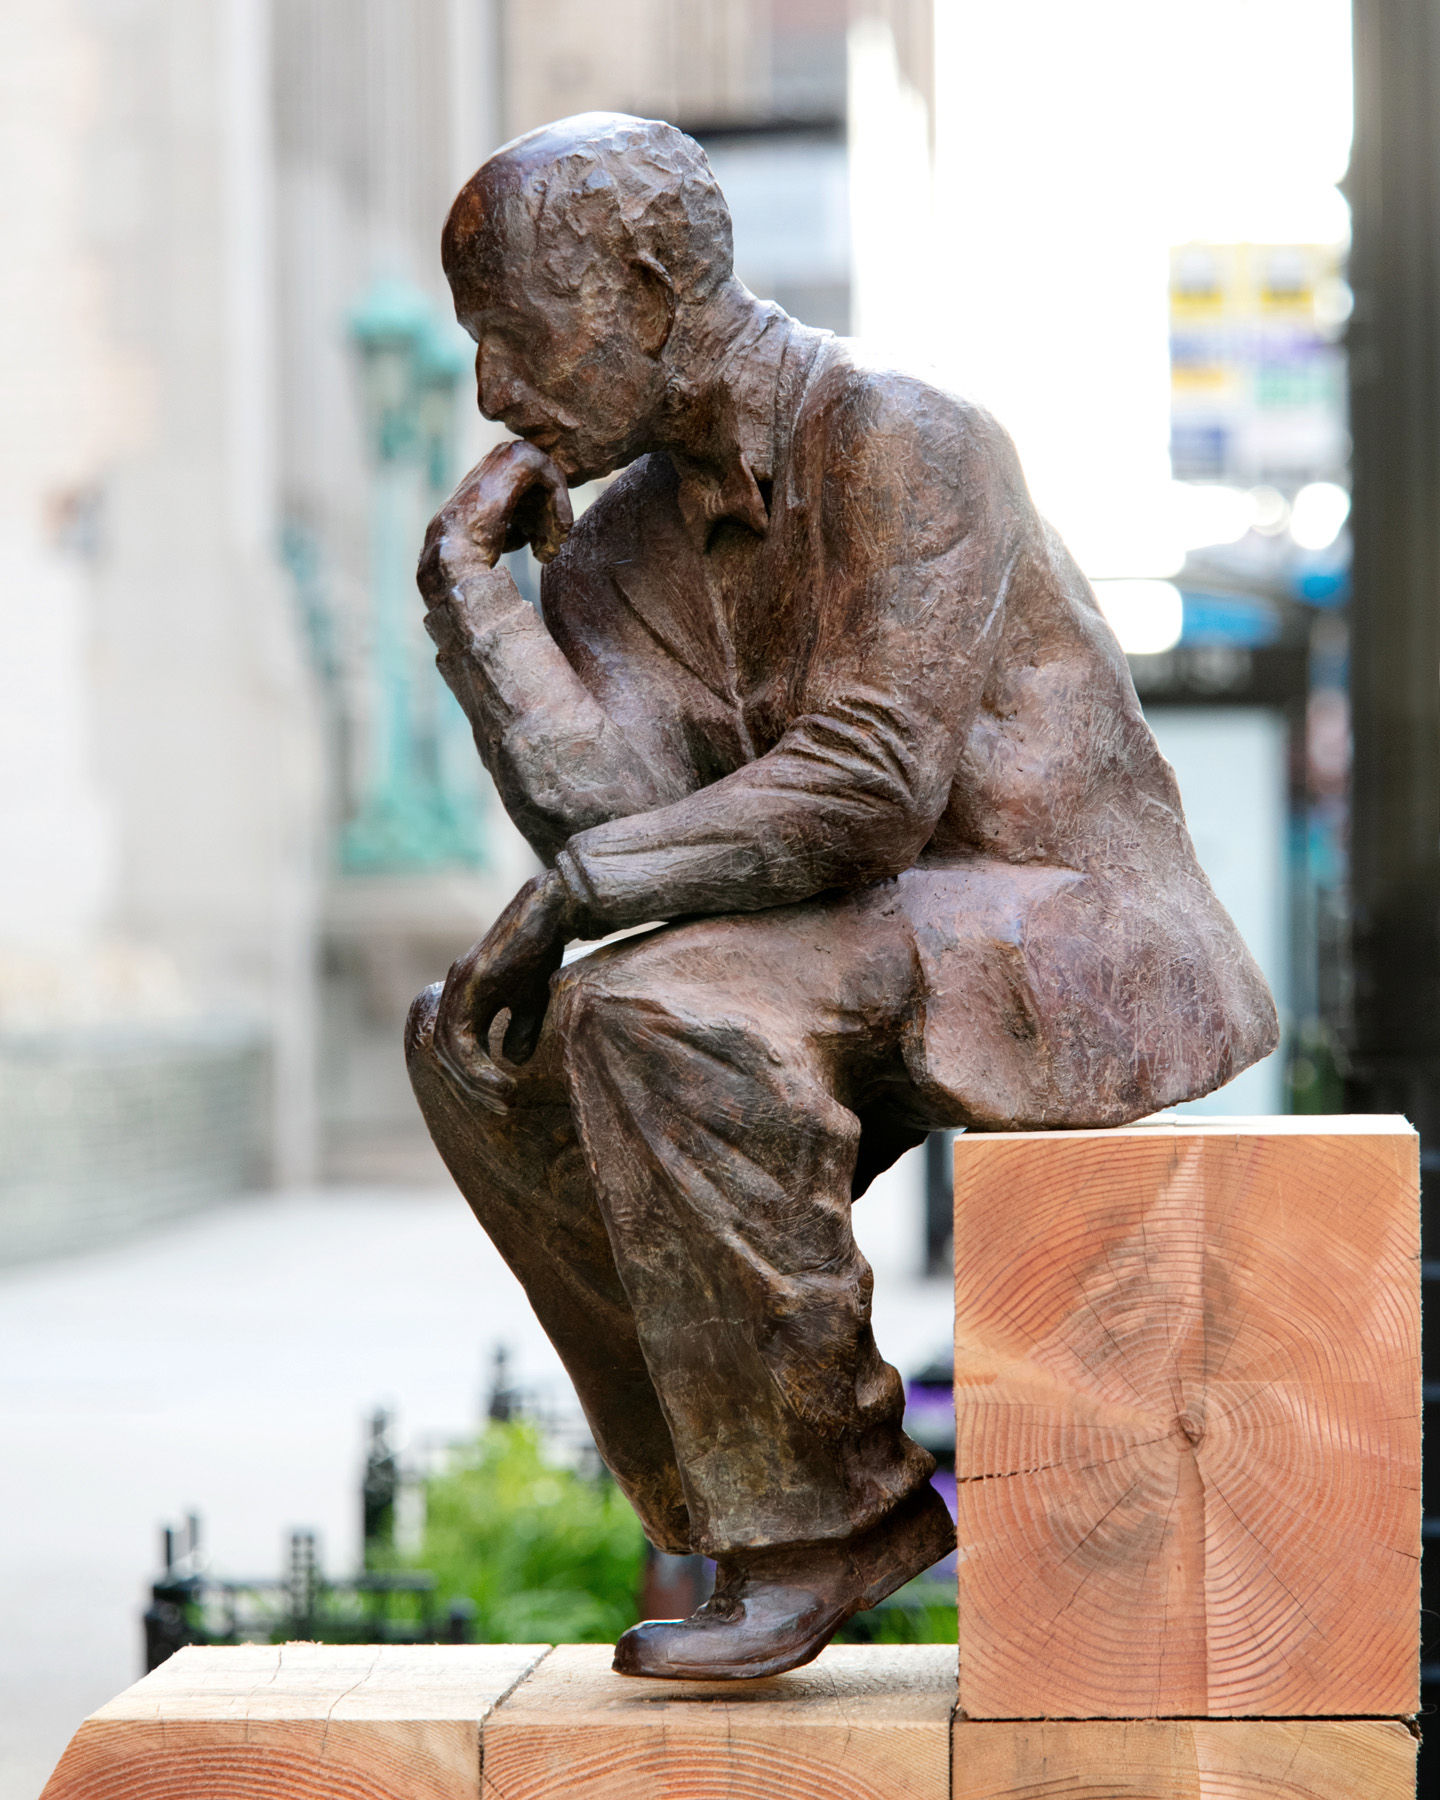 Pensive Sculpture by Radcliffe Bailey Purchased Will be Sited at 770 N. Water Street